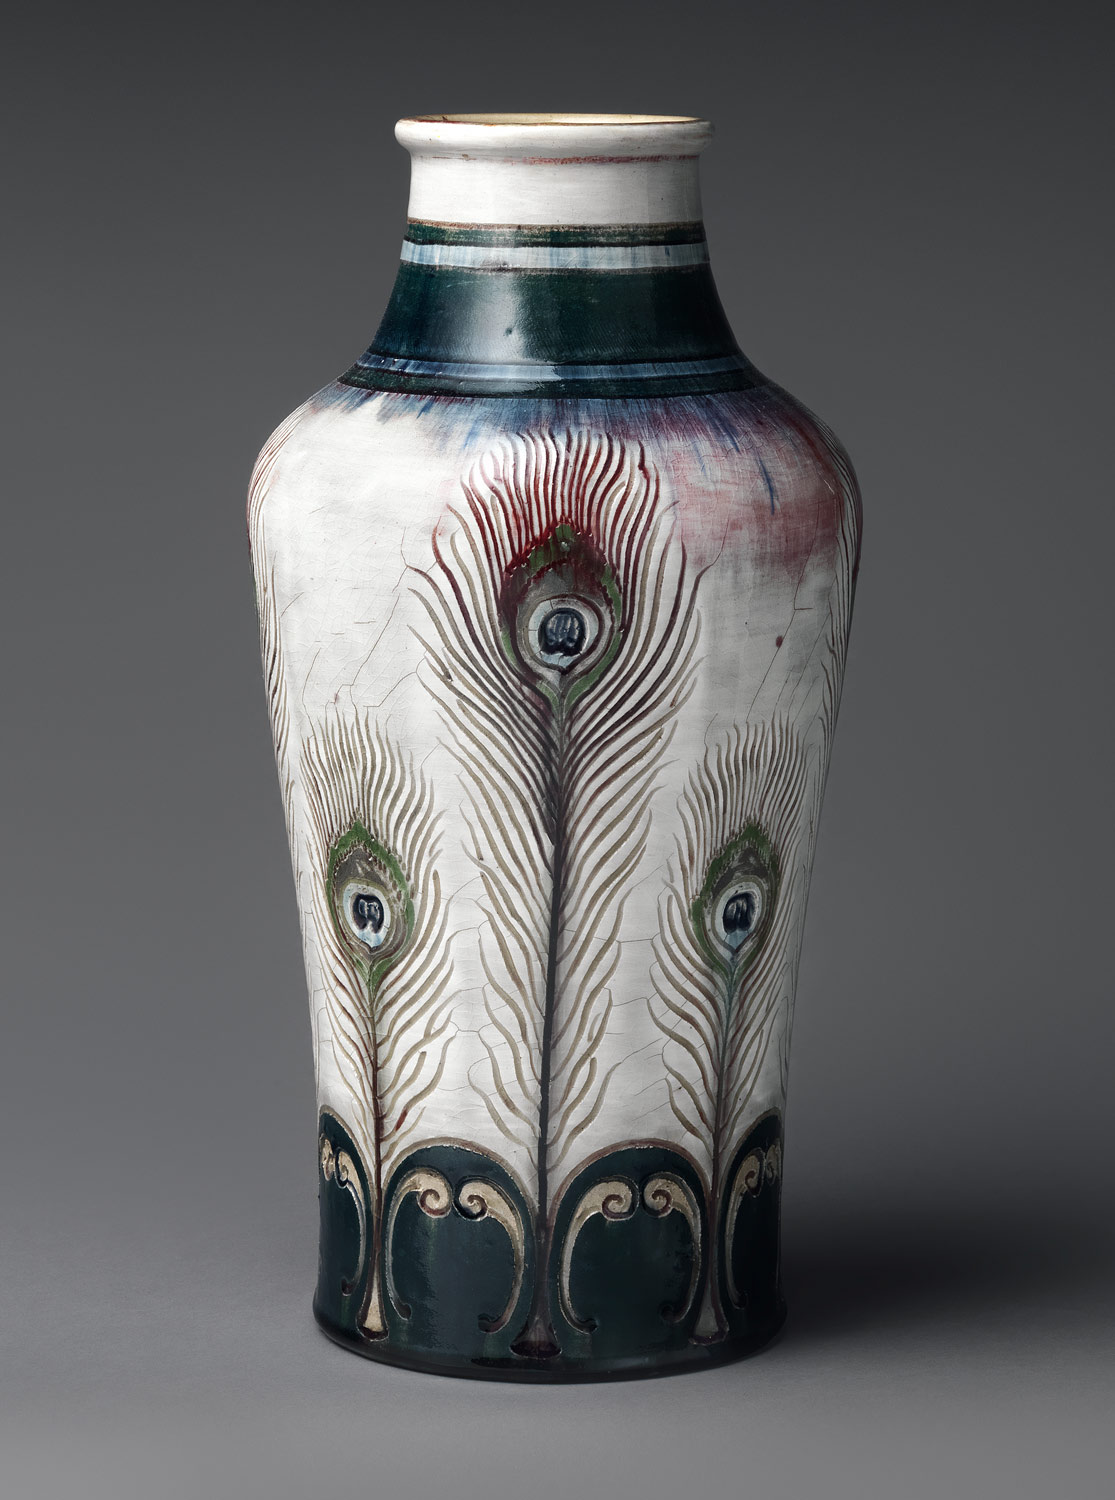 Vase with peacock feathers